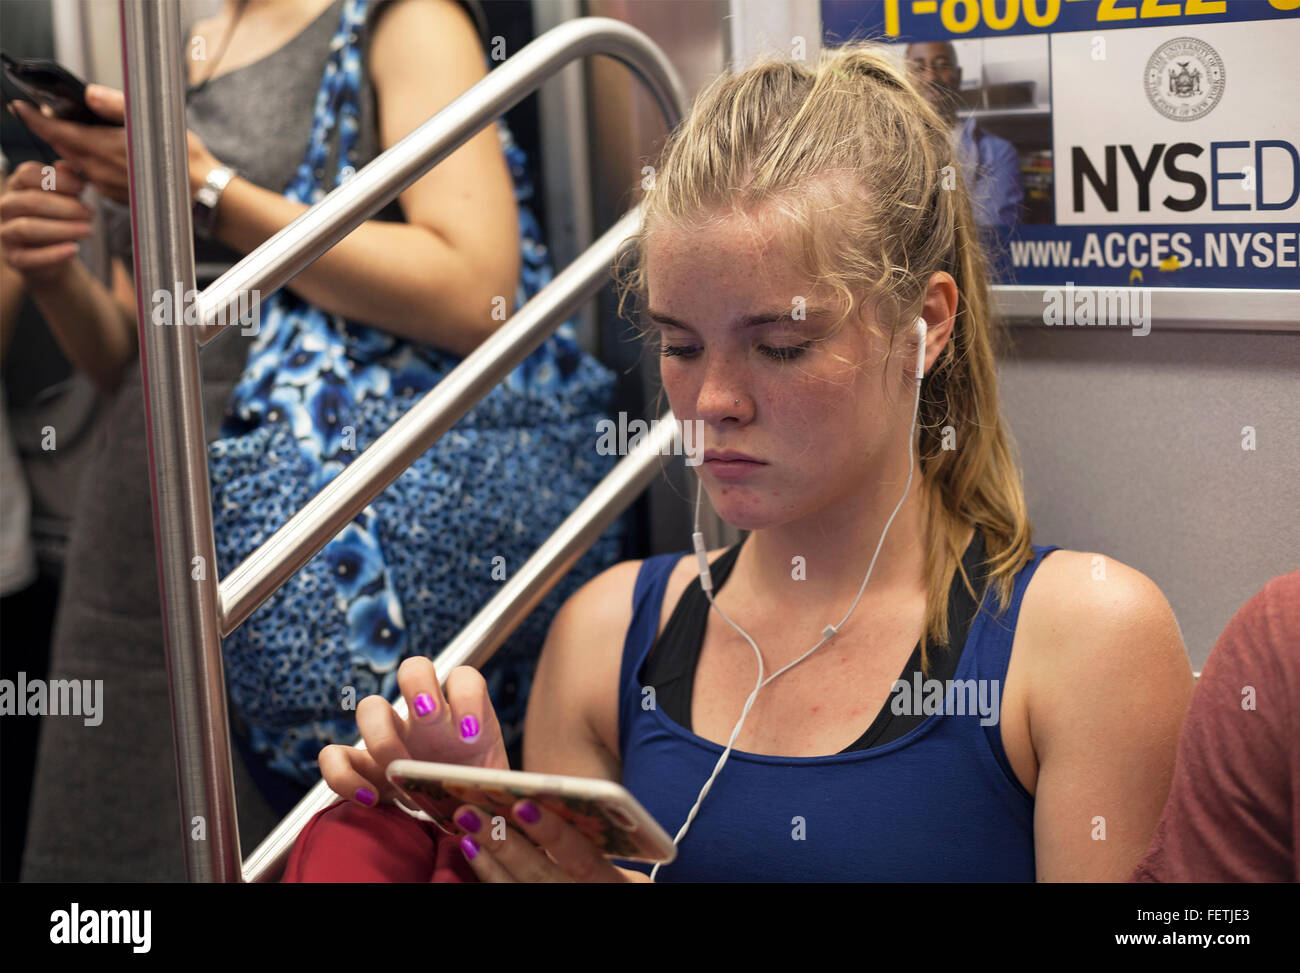 A young woman uses her phone with earbuds on the subway in New York City. - Stock Image